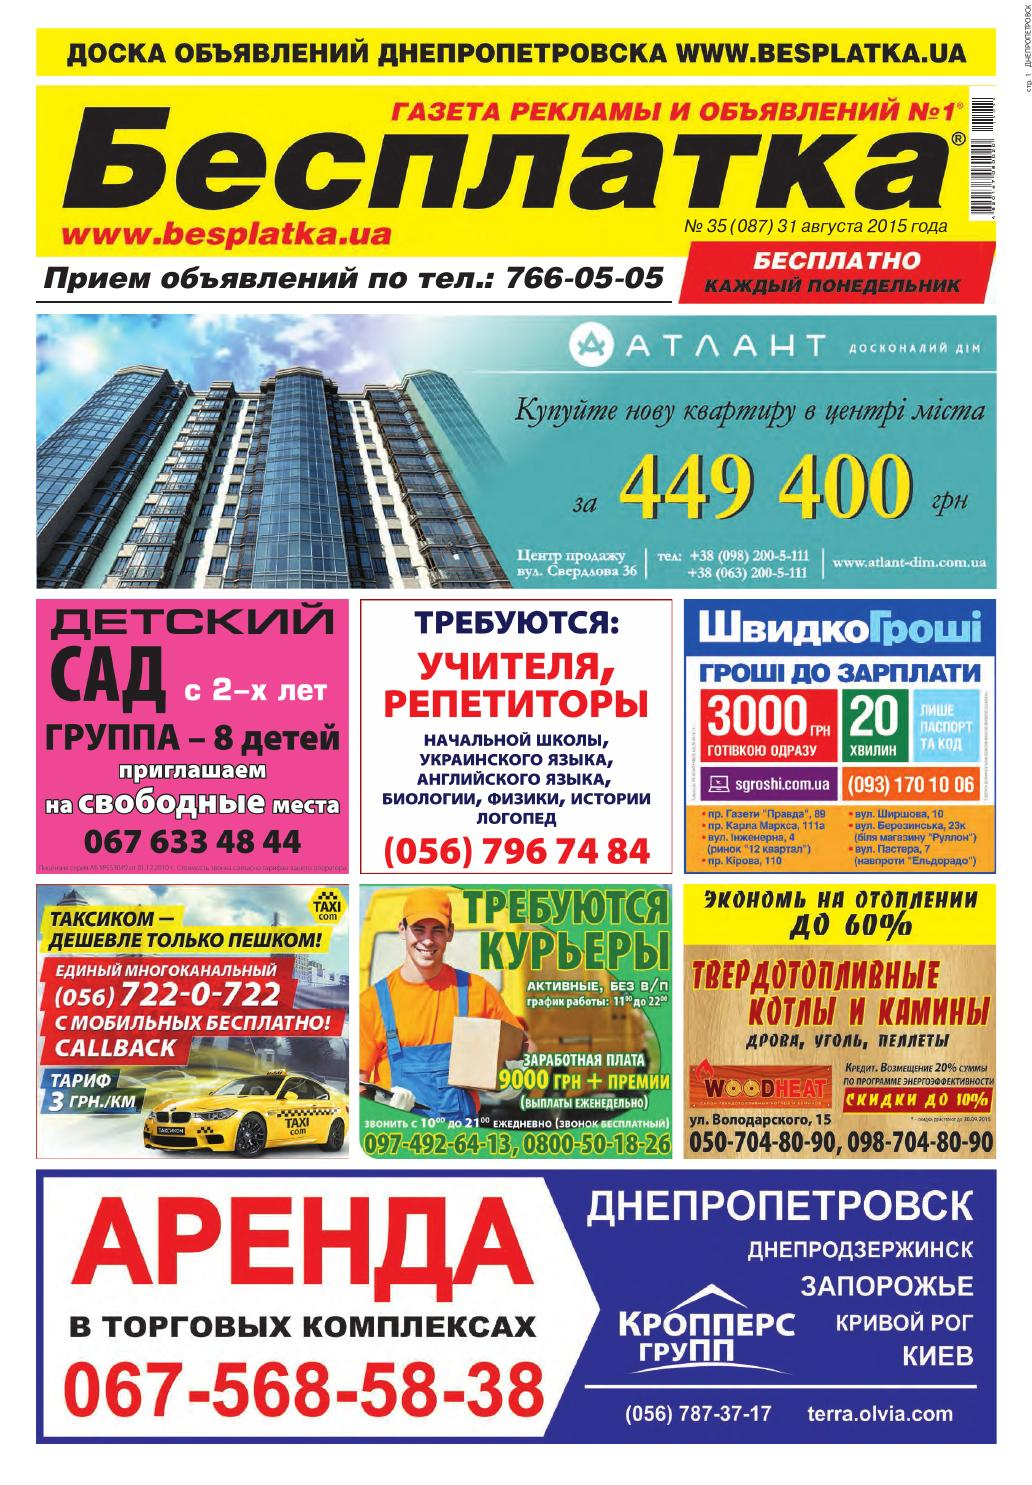 f411e310bfdc Besplatka  35 Днепропетровск by besplatka ukraine - issuu